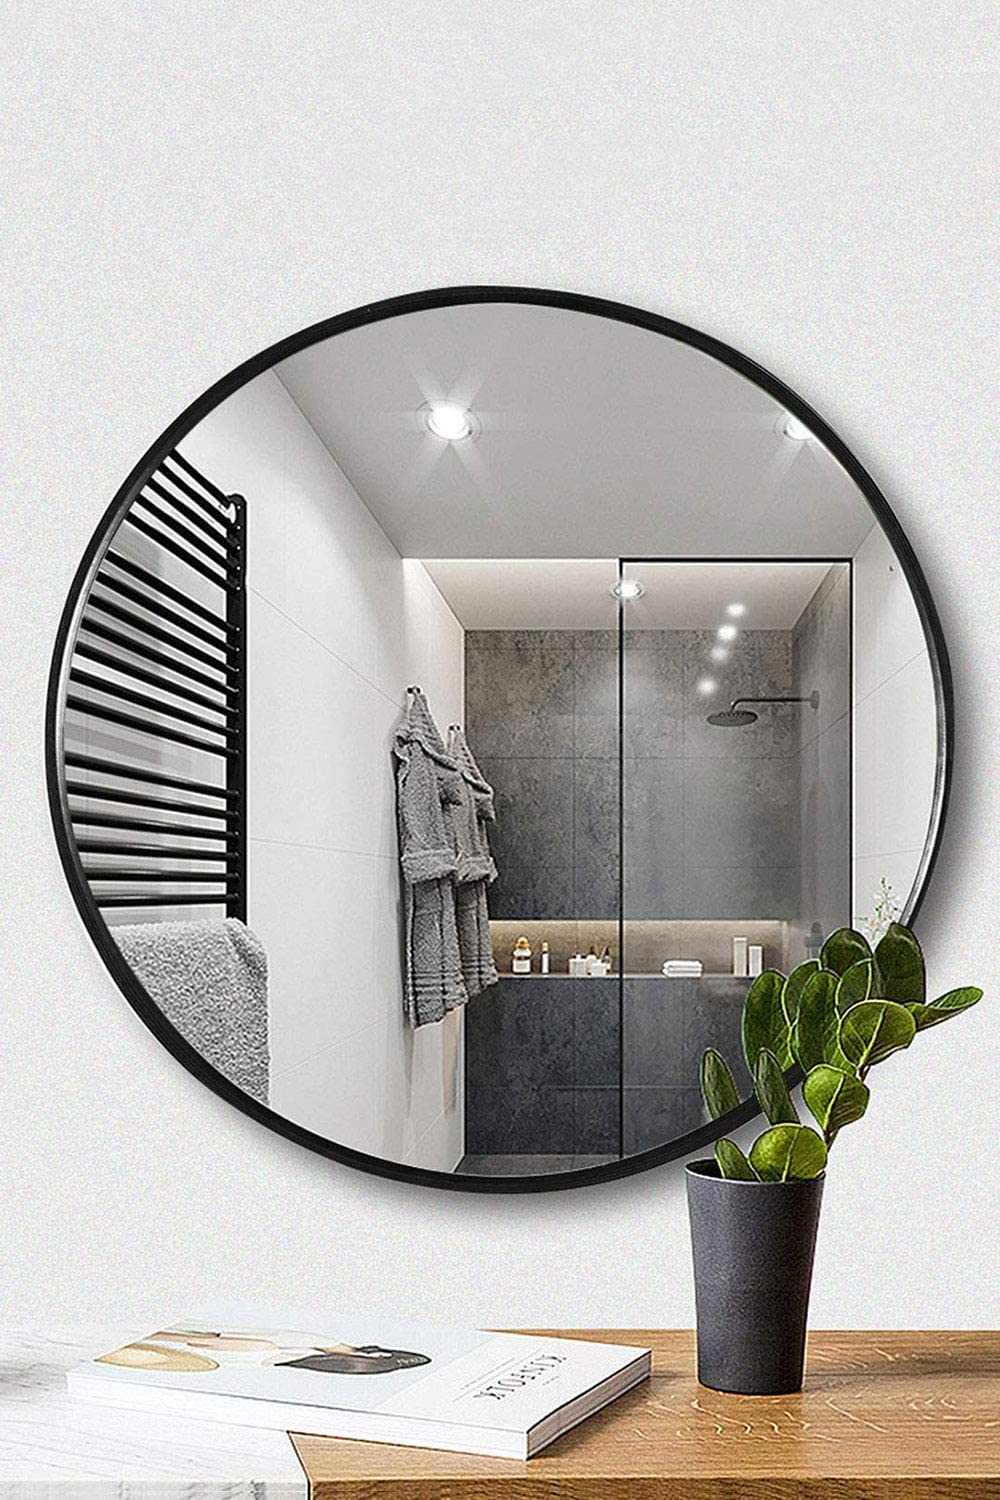 Amazon Com Tinytimes 23 63 Inch Round Mirror Modern Accent Wood Frame Large Vanity Mirror For Entryways Living Rooms Bathroom Home Mirrors Decor Circle Wall Mirror Black Home Kitchen